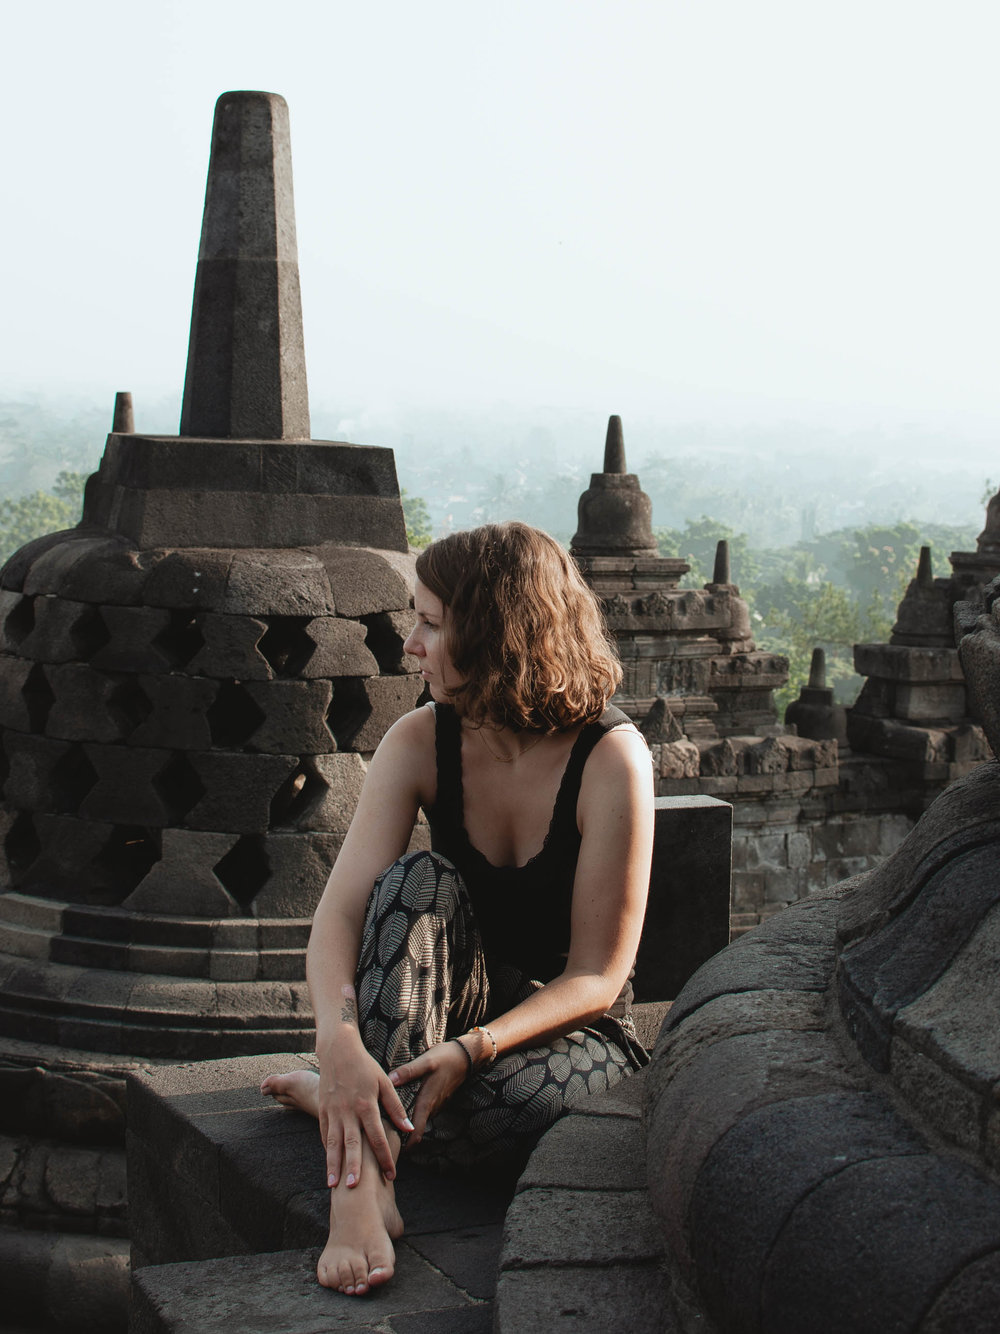 My friend Rahel at Borodudur temple in Indonesia